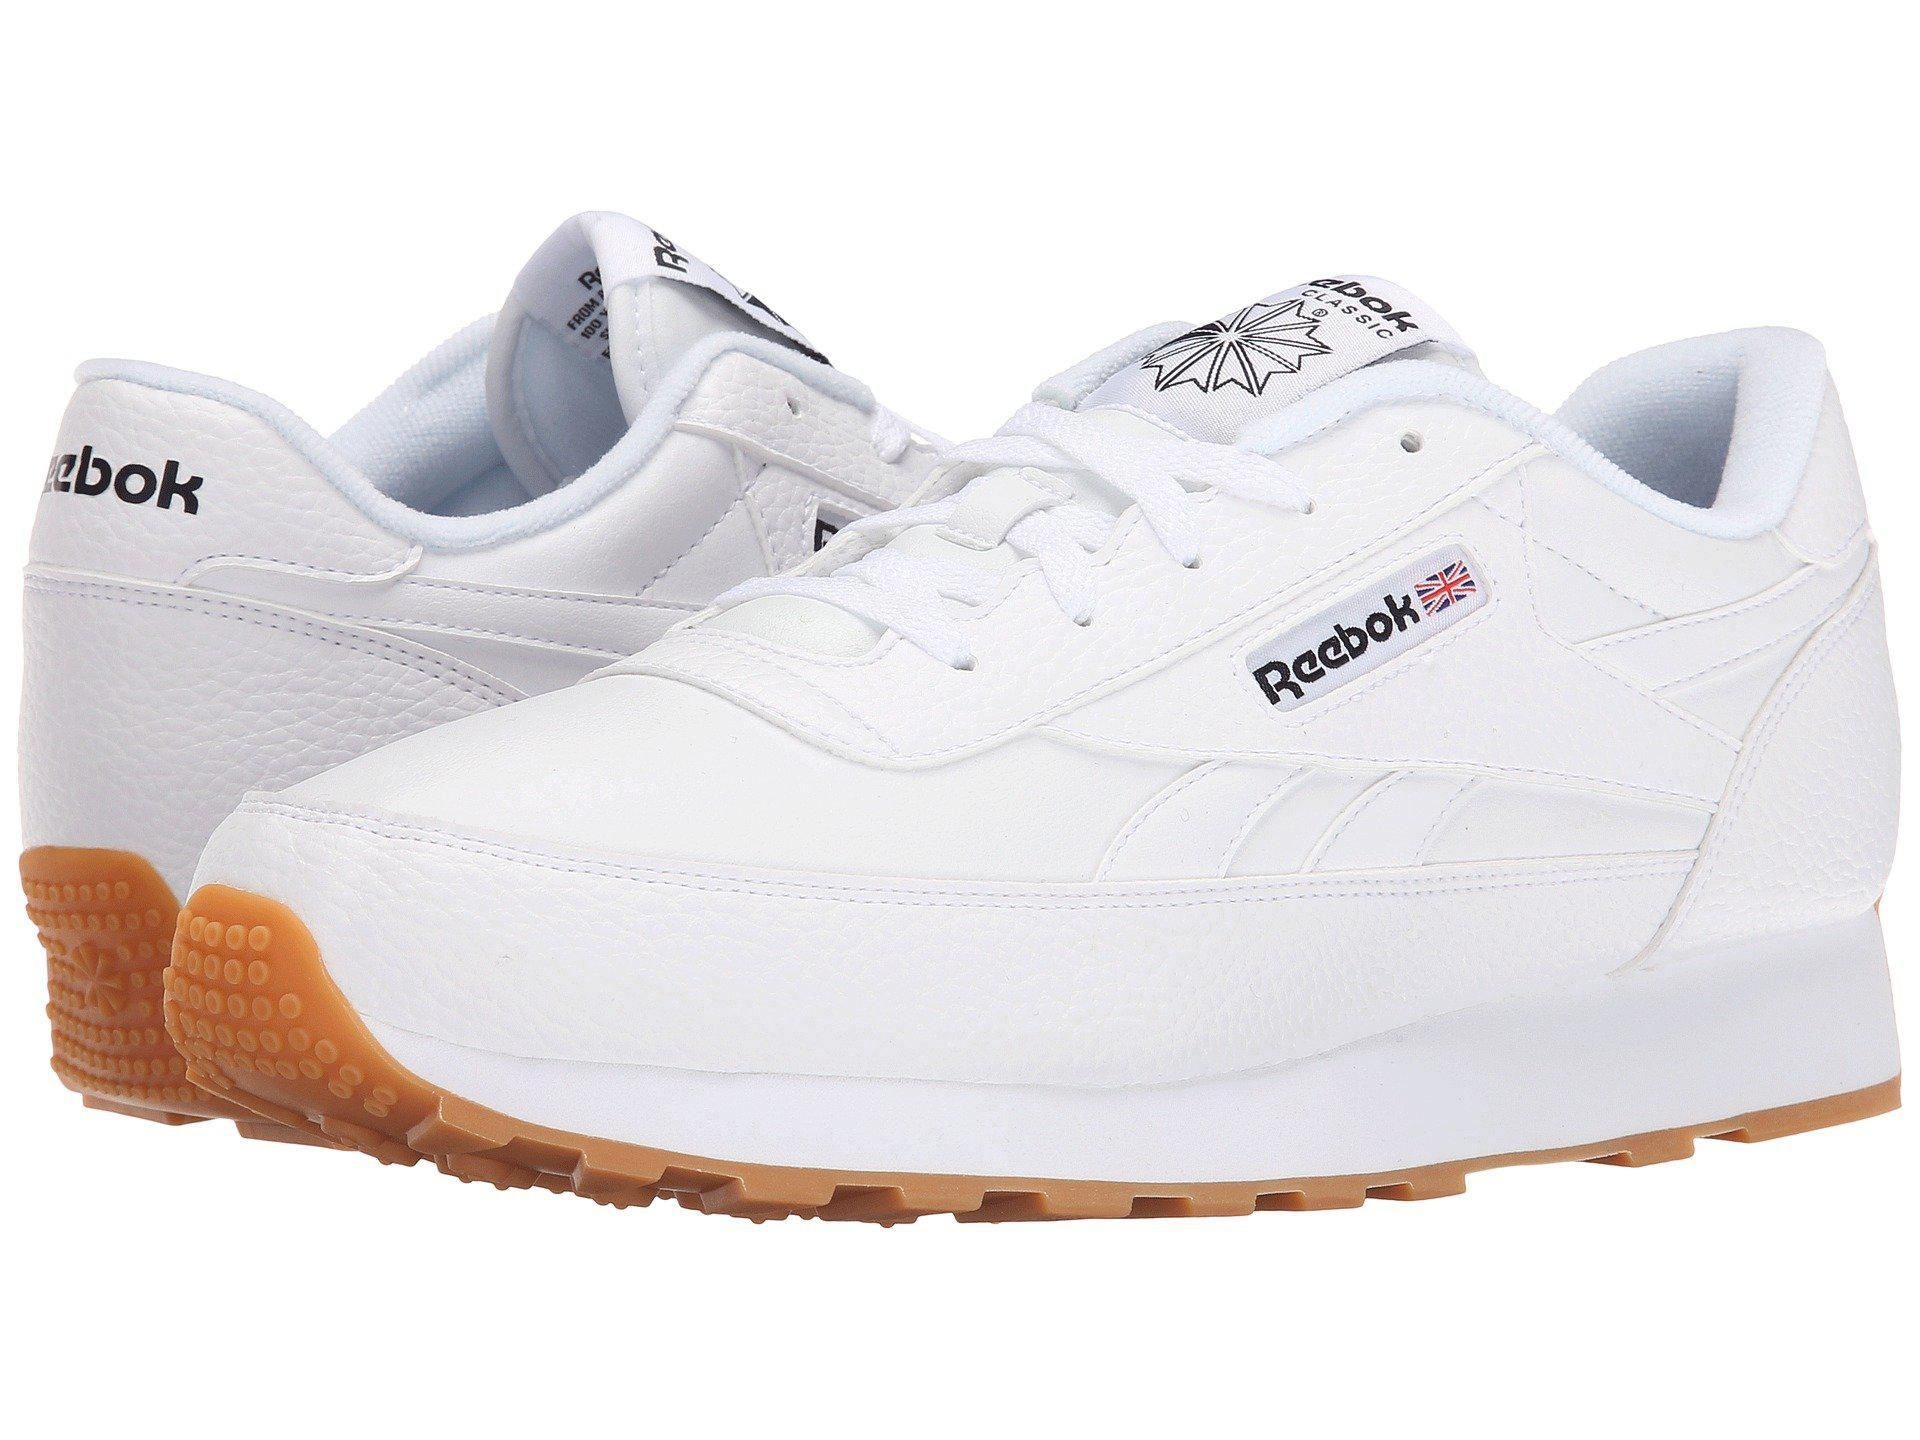 dc3b863d74a Reebok - White Classic Renaissance Gum for Men - Lyst. View fullscreen